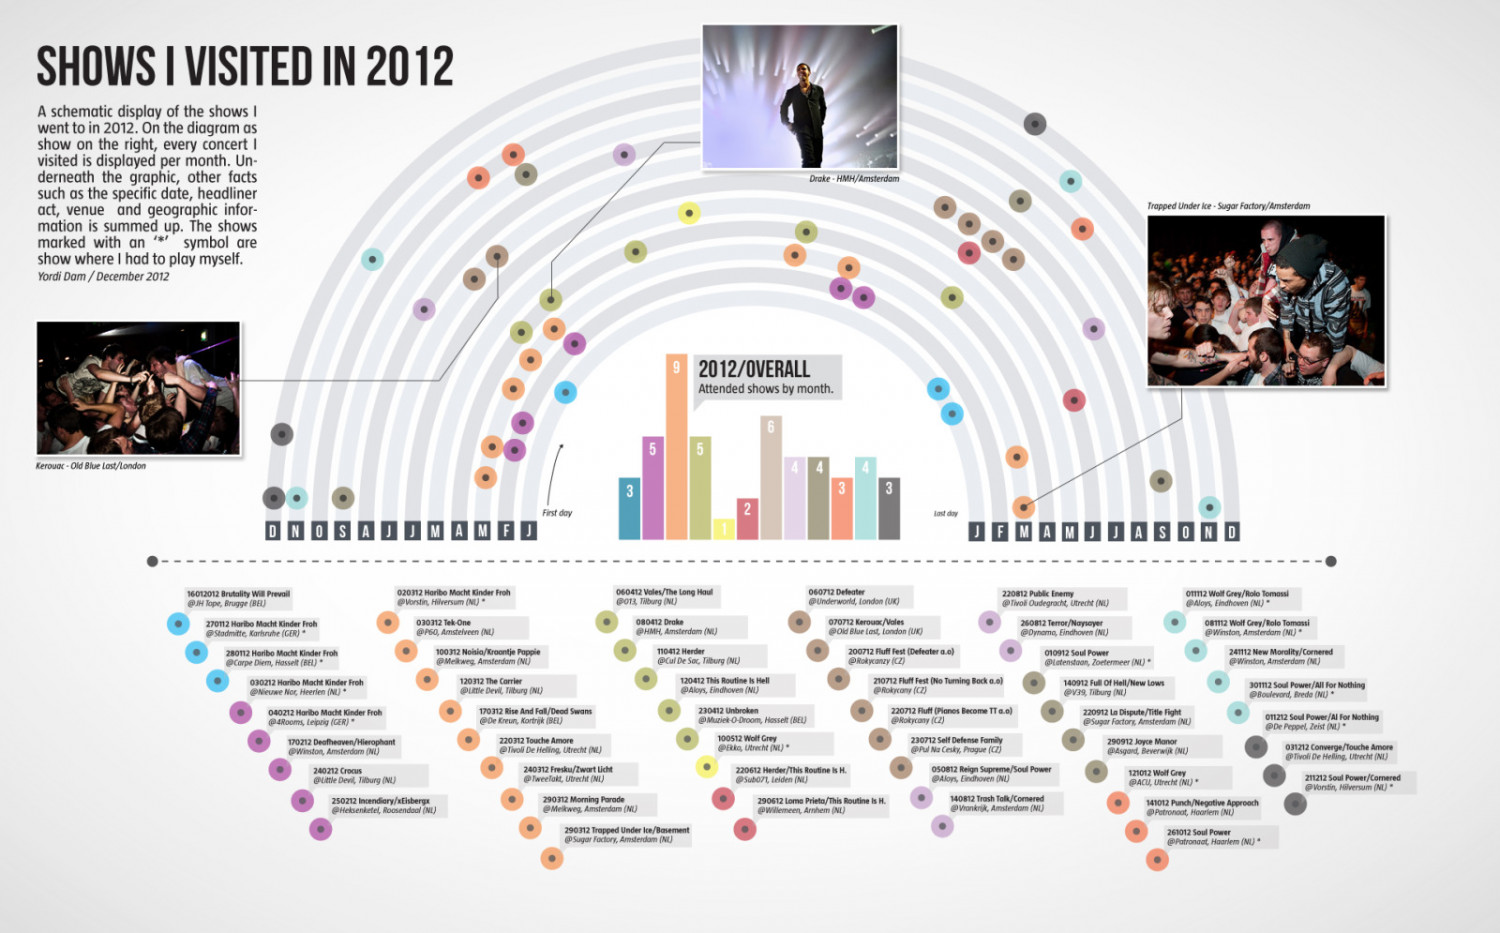 Concerts I visited in 2012 Infographic